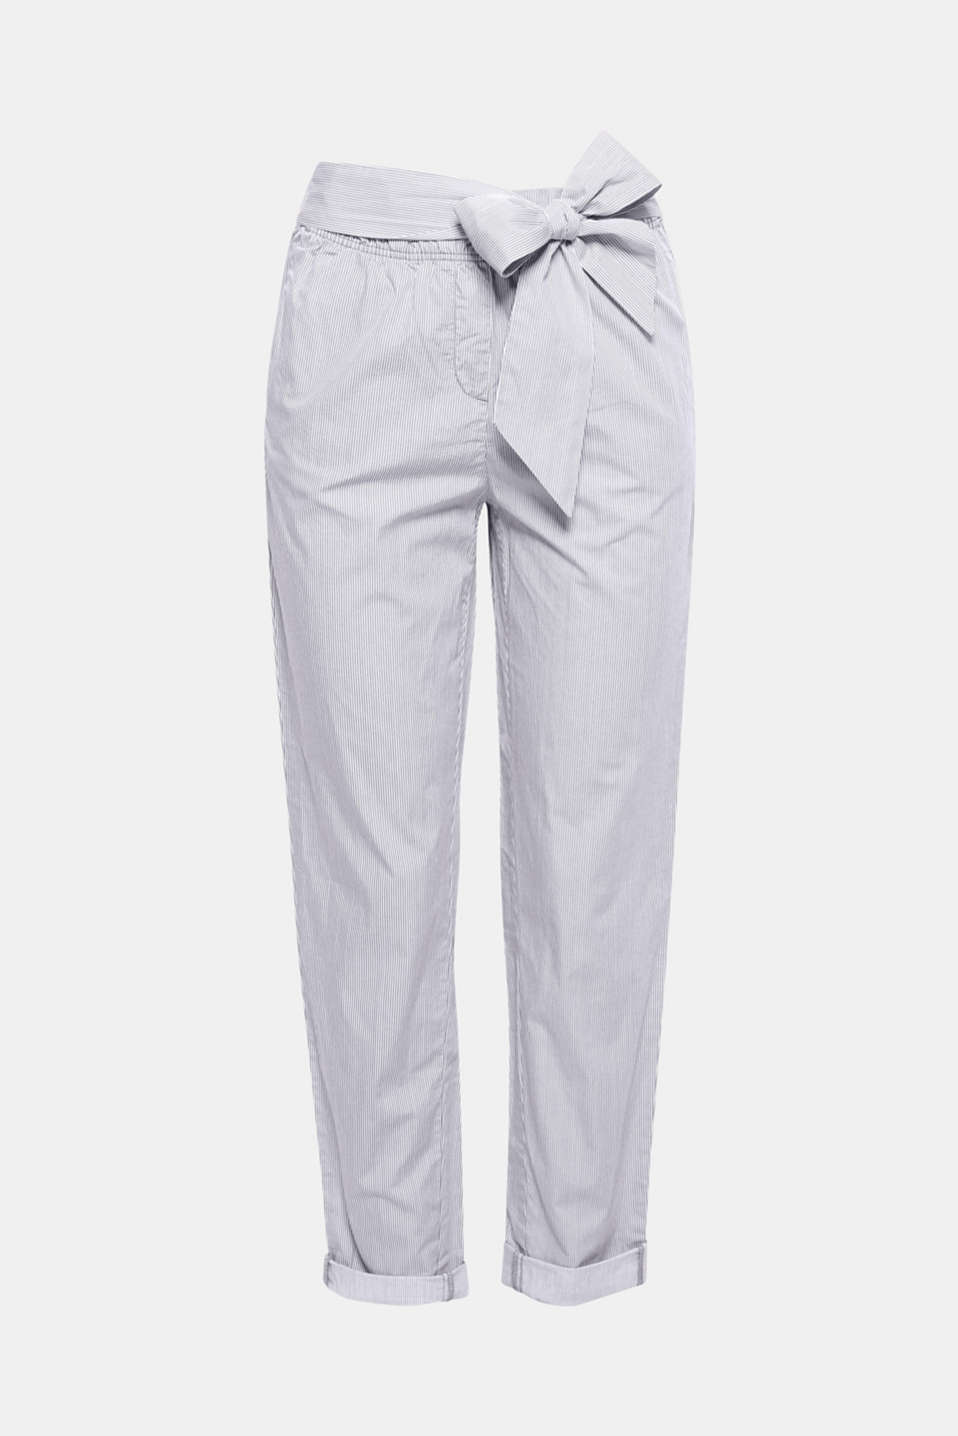 These cropped cotton trousers deliver maximum comfort and can be styled to create lots of lush looks. They come with an elasticated waistband and a decorative bow detail.